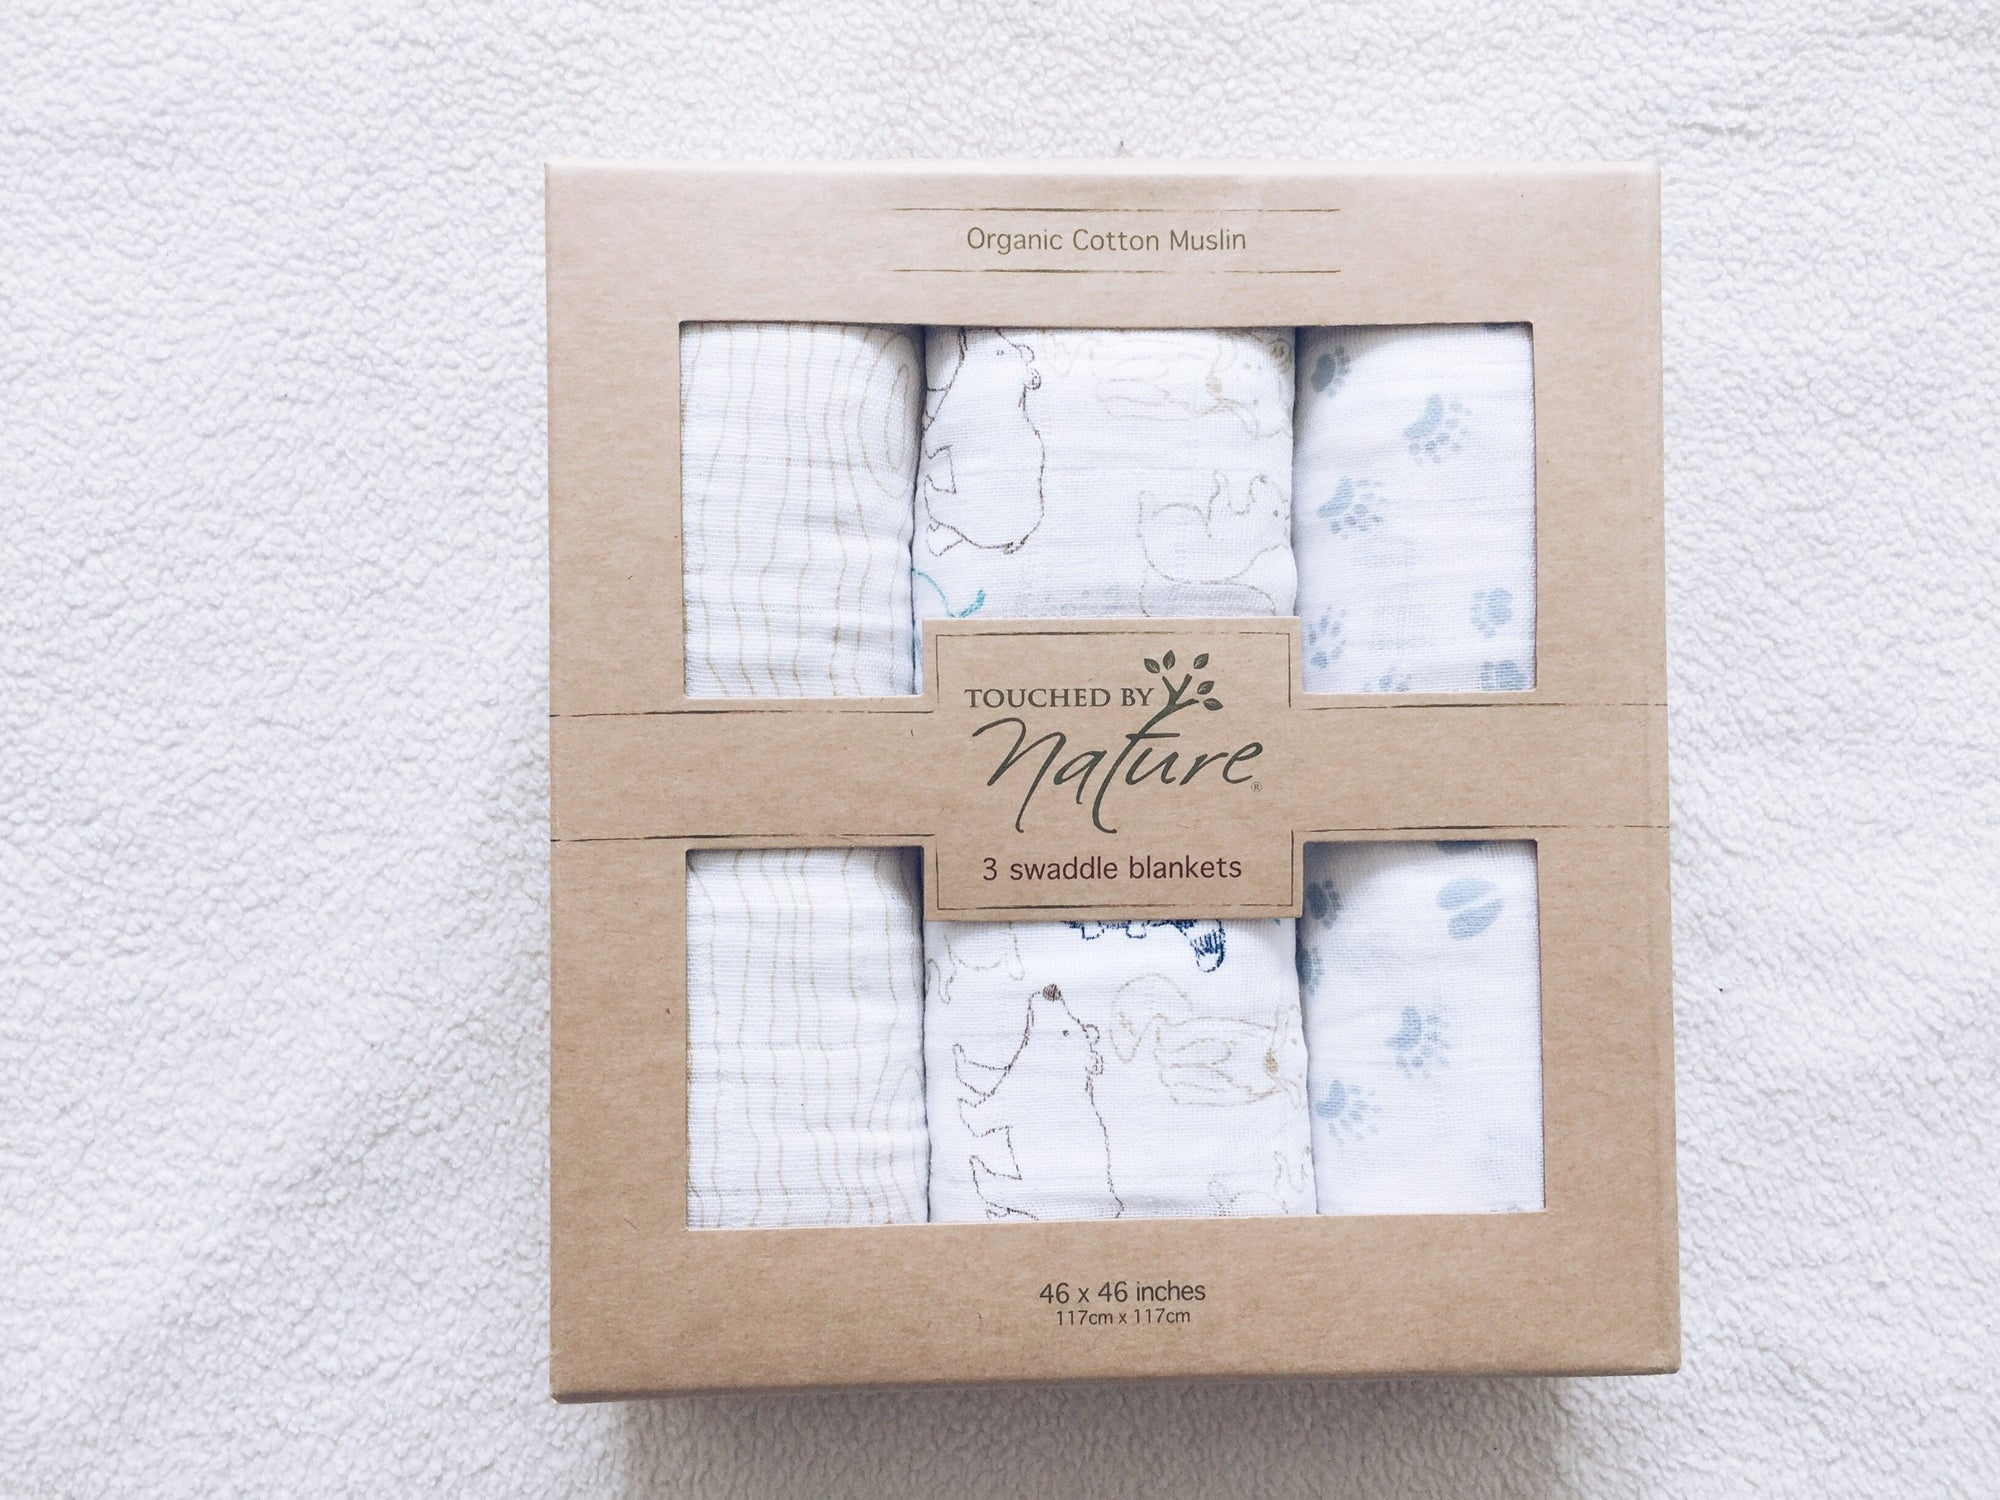 Touched by Nature,,ORGANIC'' cotton muslin (3pack)